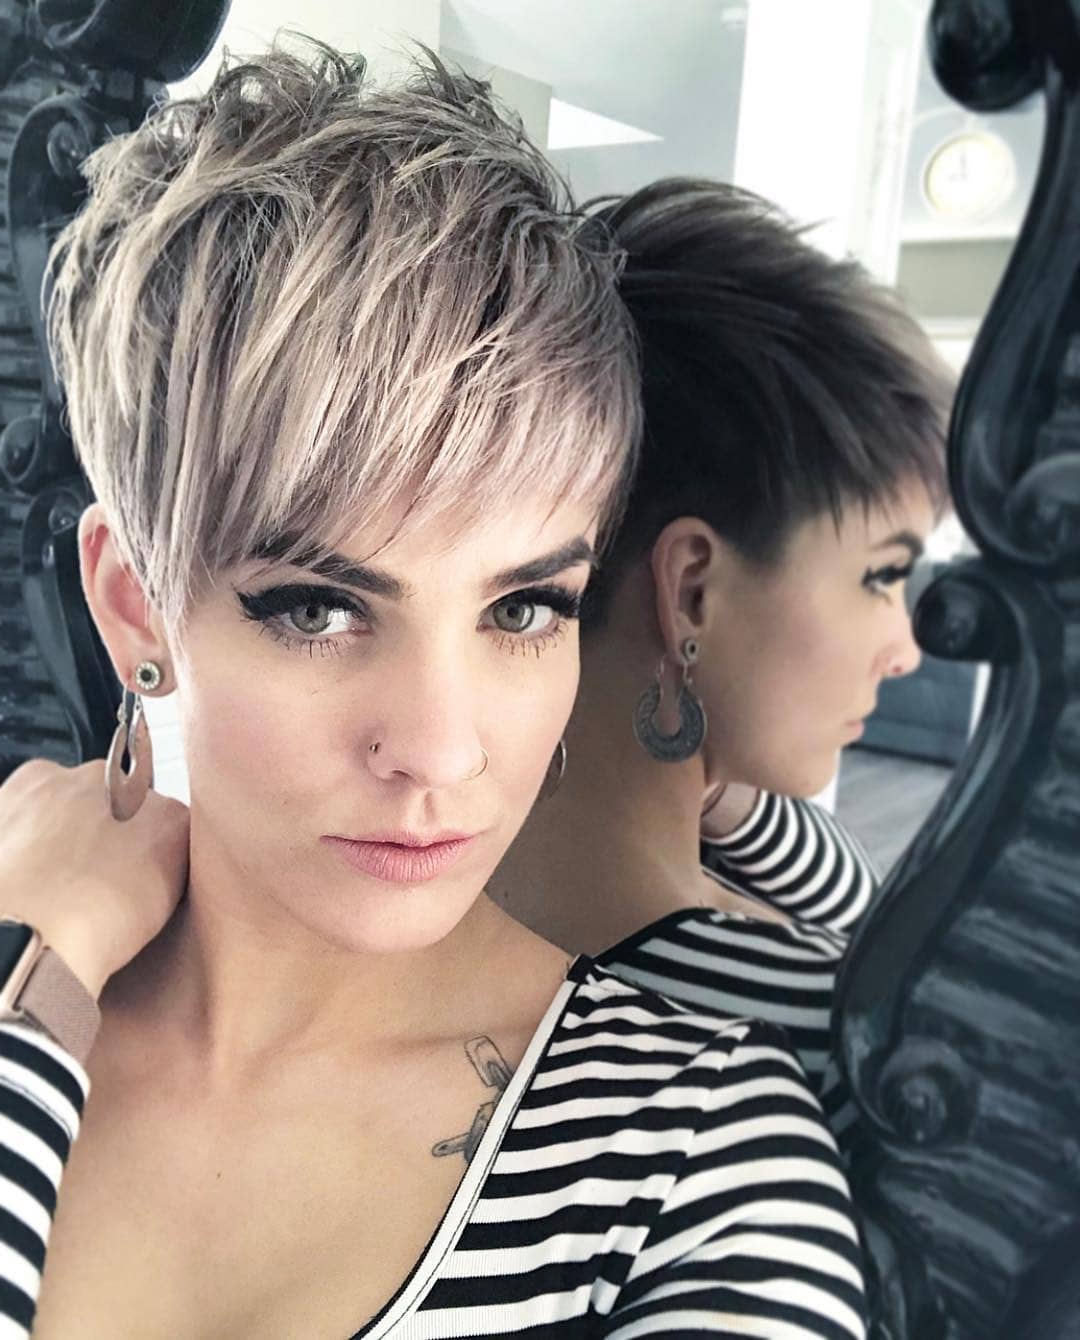 Top 10 Most Flattering Pixie Haircuts For Women, Short Hair Styles 2019 Intended For Messy Pixie Hairstyles For Short Hair (View 17 of 20)